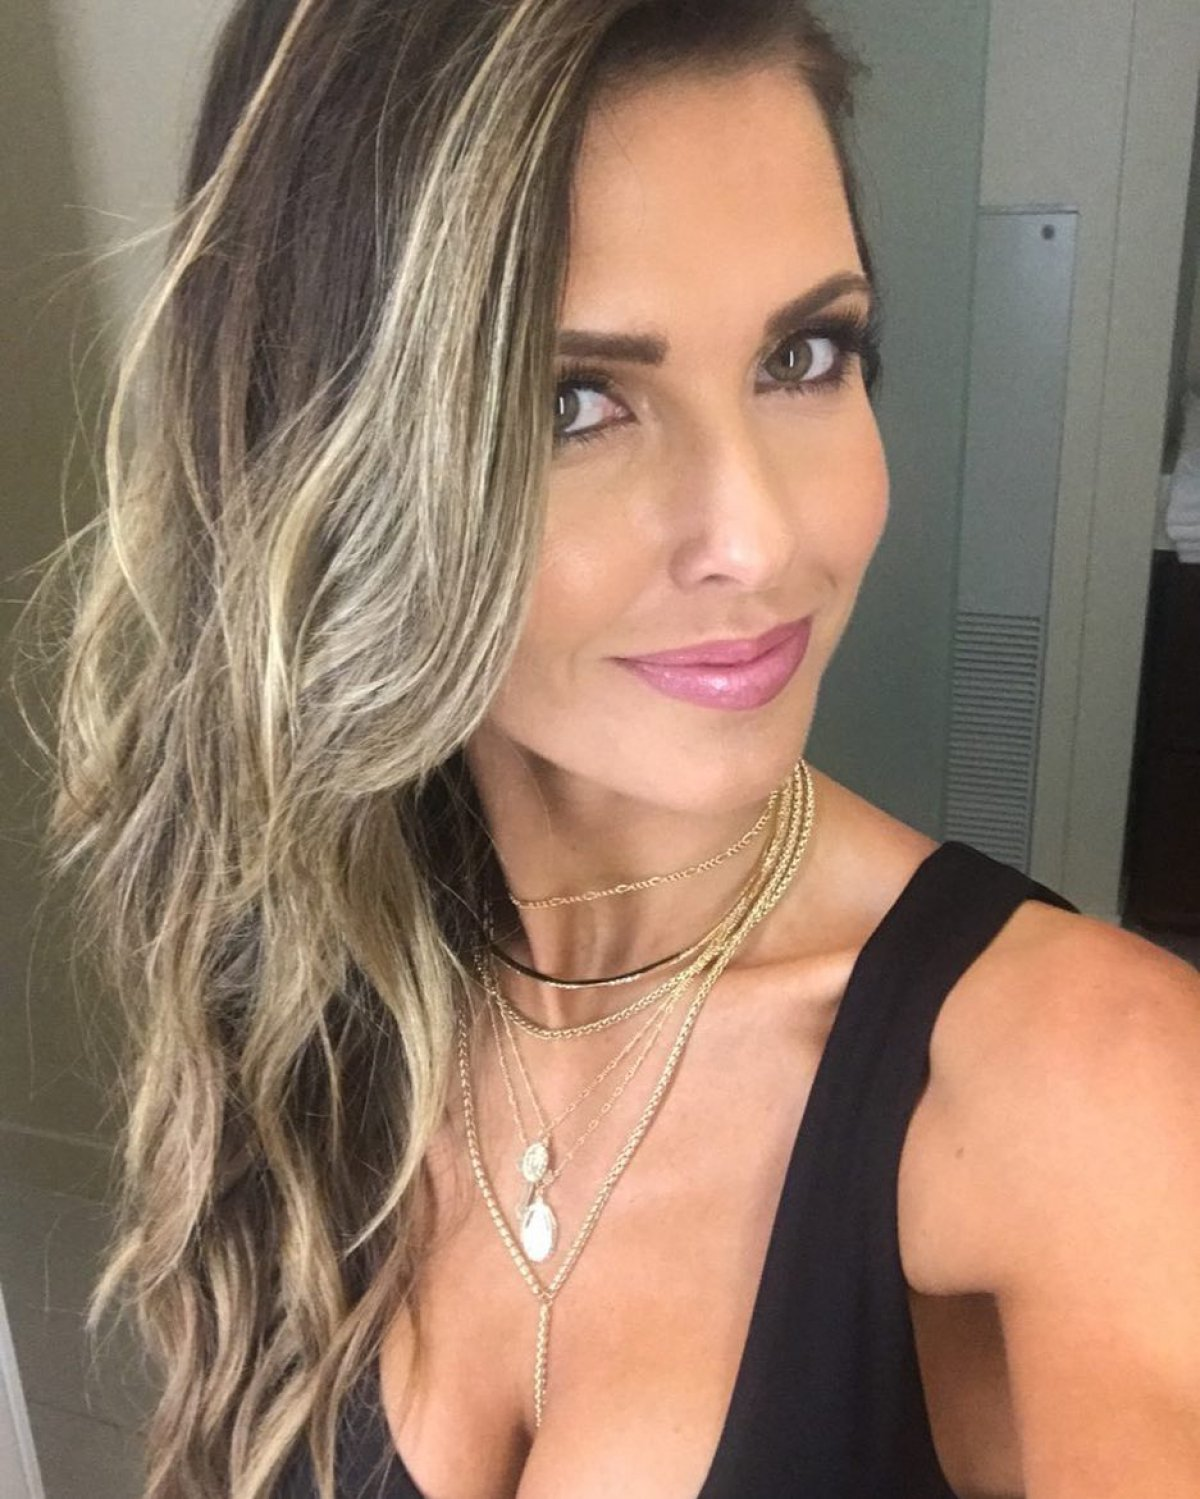 braless Instagram Audrina Patridge naked photo 2017